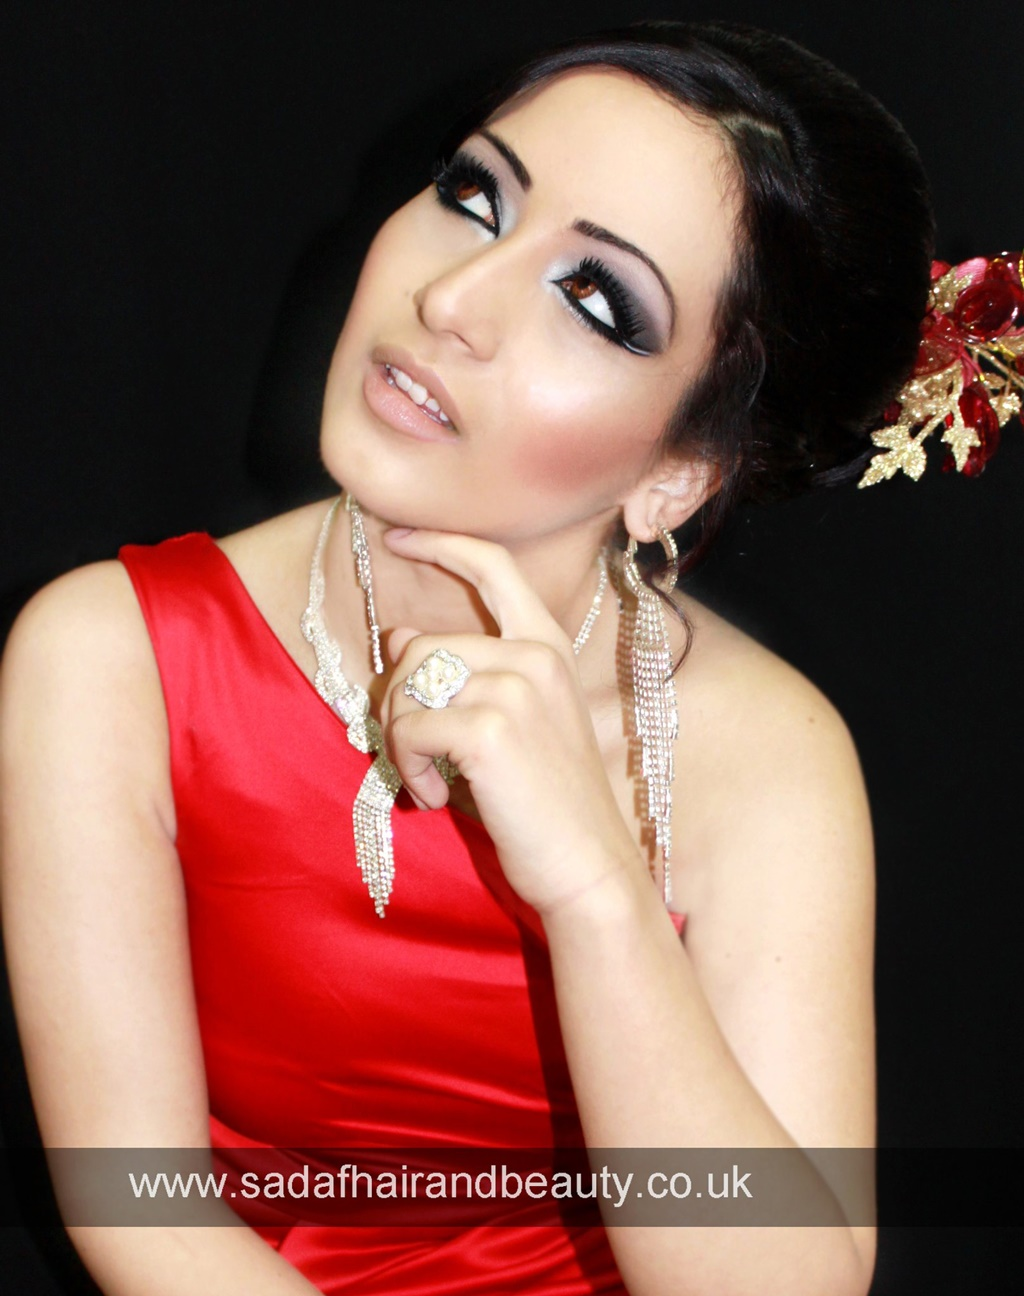 Arabic Smokey Makeup For Party Wear - 341652,xcitefun-arabic-smokey-makeup-for-party-wear-1